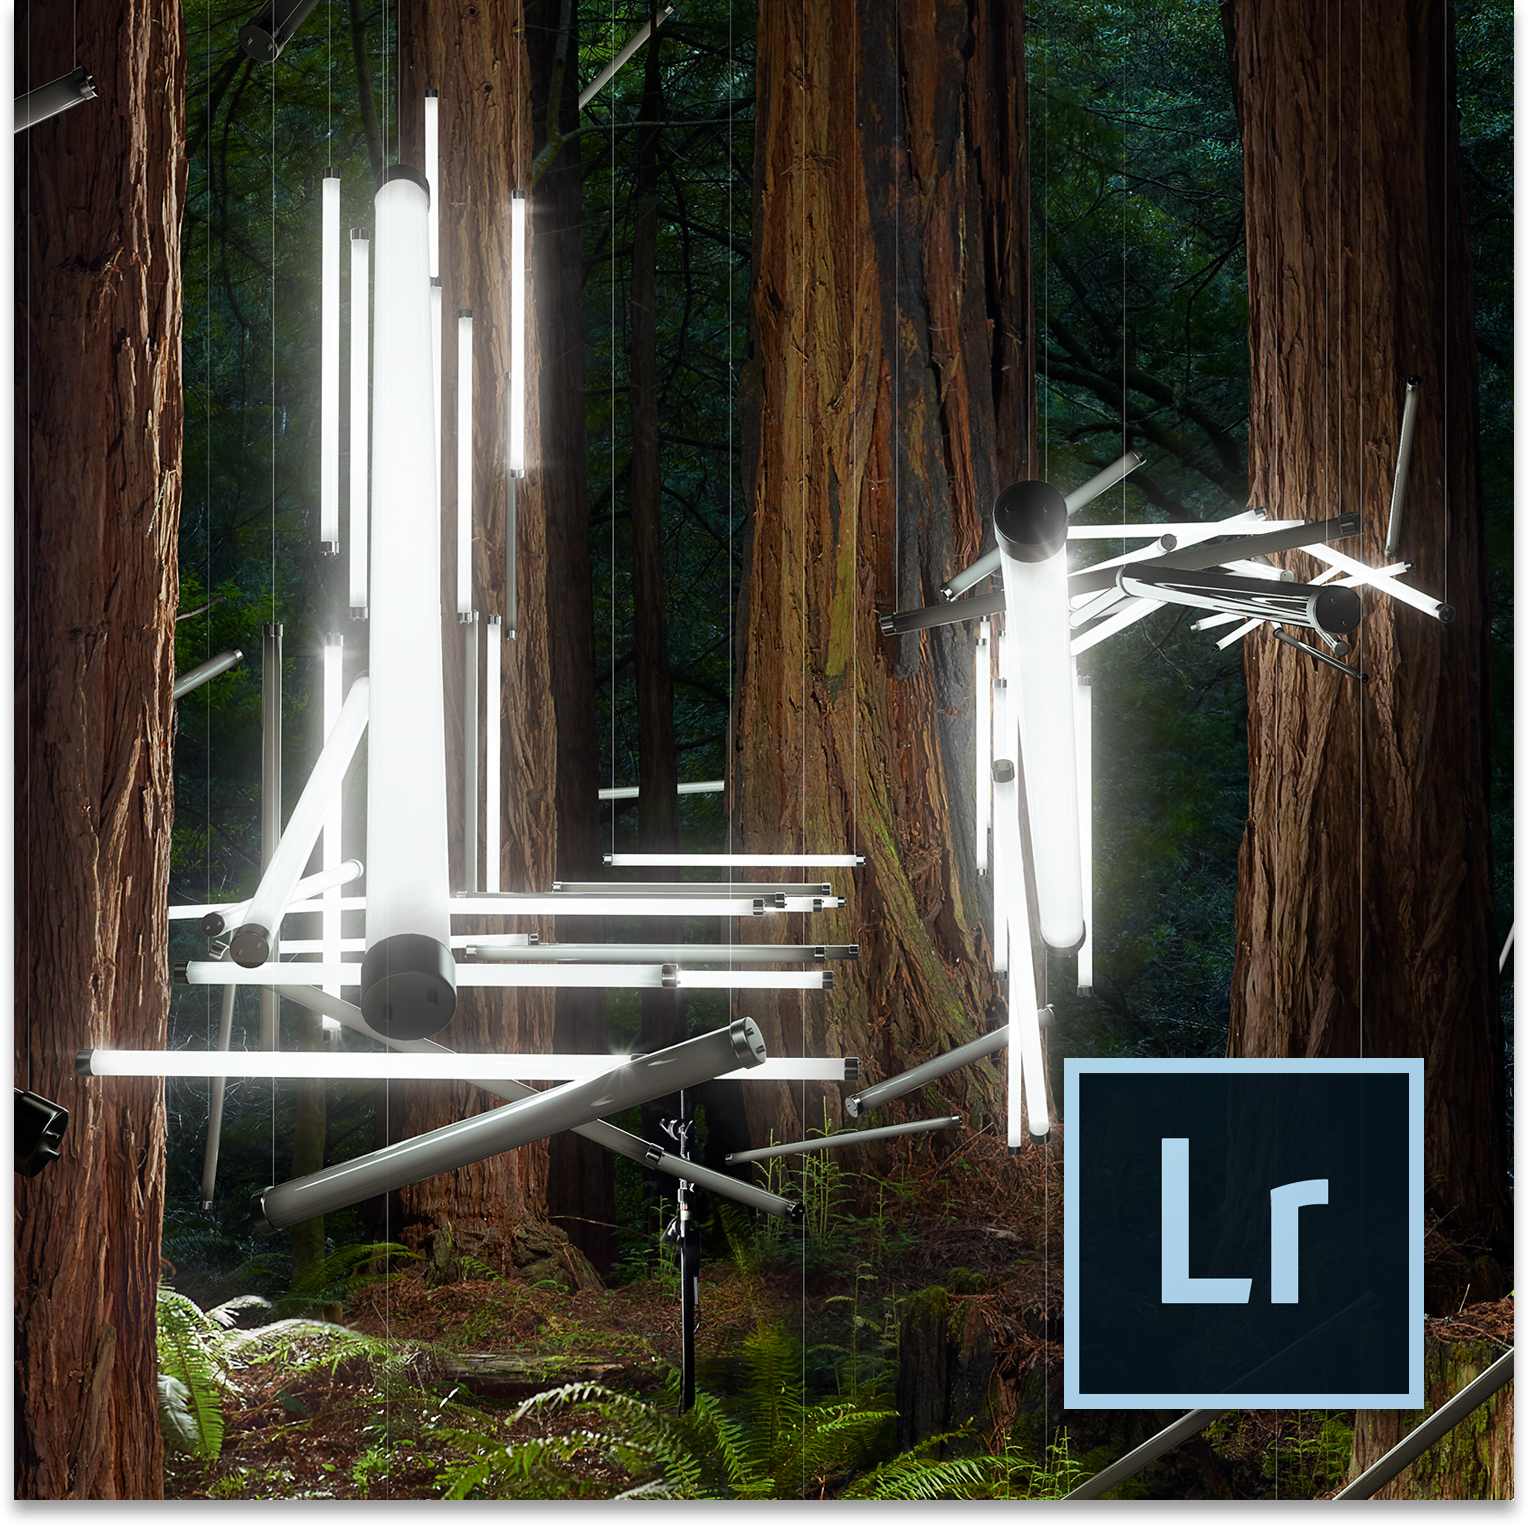 Adobe launches Lightroom 5 with exciting new options